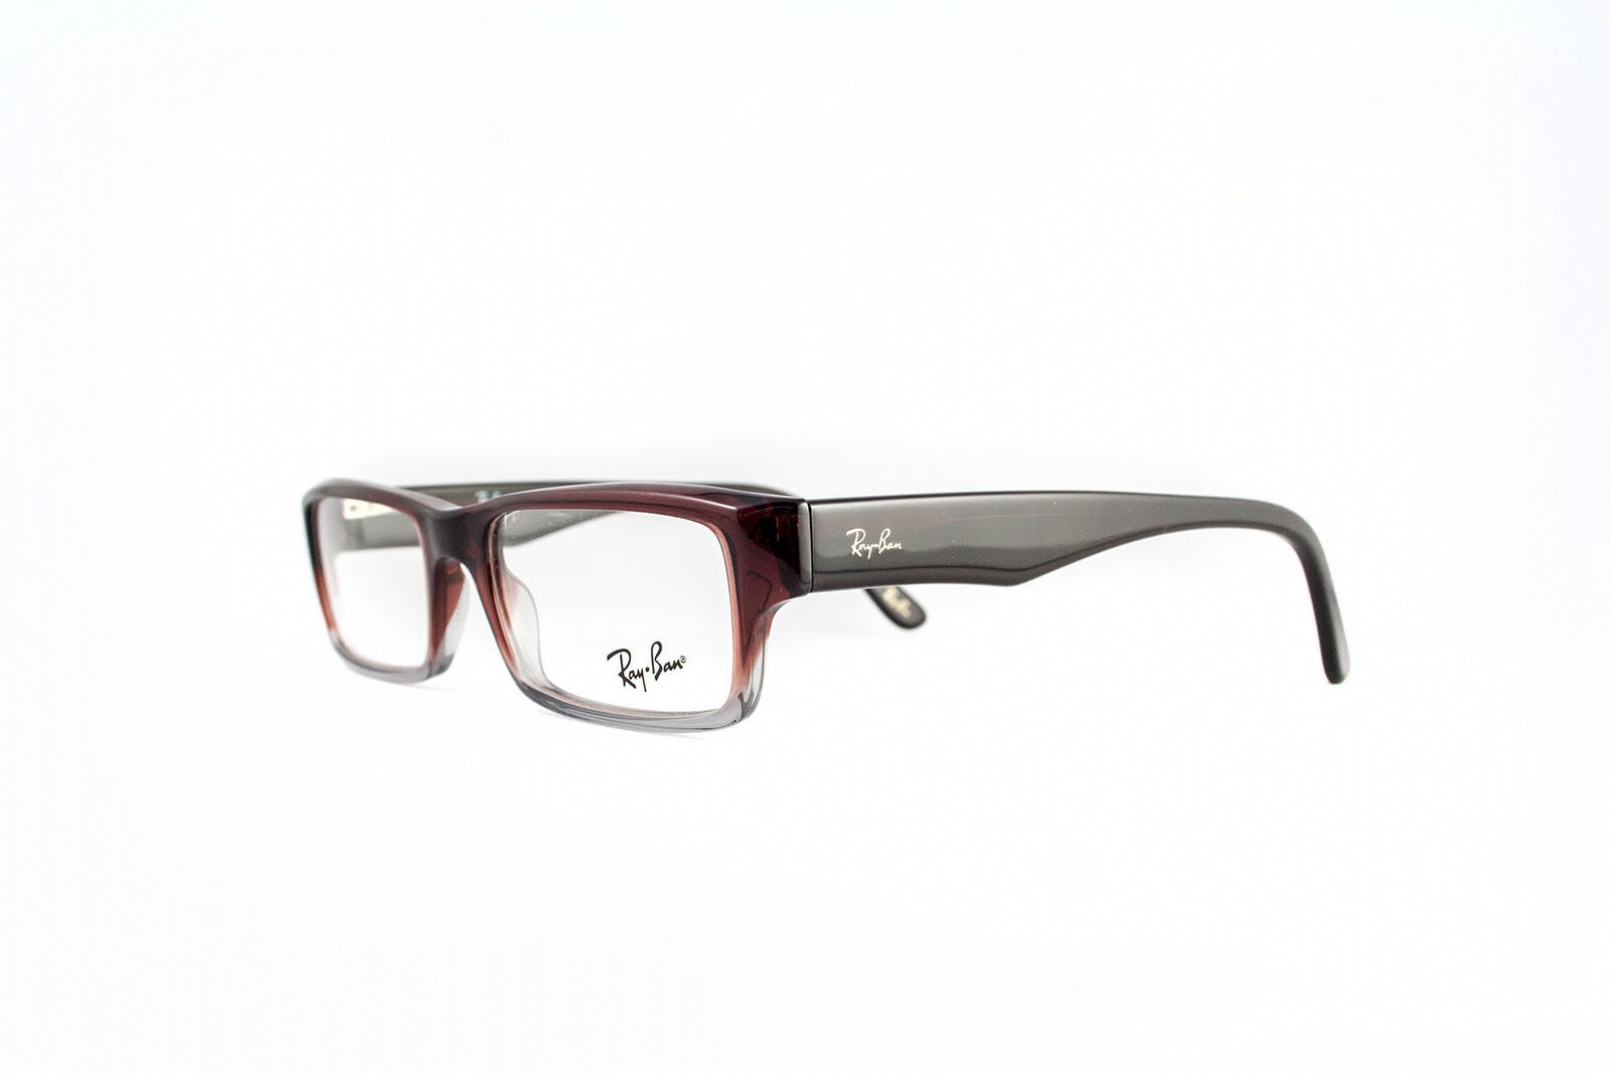 2d6e7ff16a Ray Ban 5213 2000 54 18 140 - Bitterroot Public Library